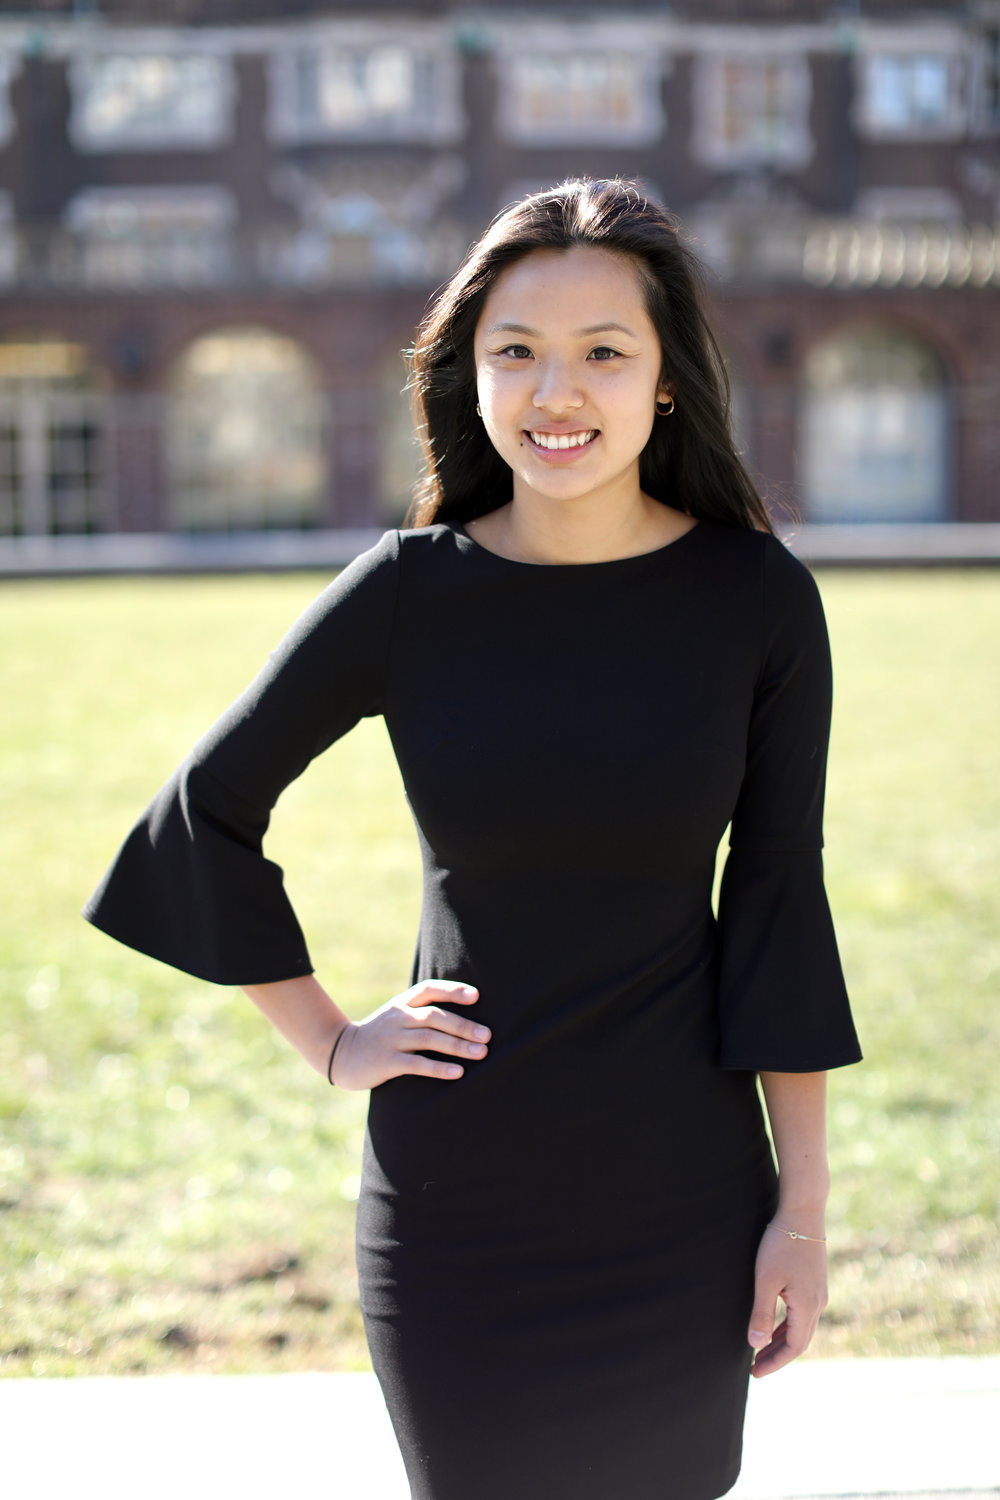 Victoria Yuan - Vice President of University RelationsVictoria Yuan (Class of 2019) is from Bala Cynwyd, PA and is studying Business Analytics and Operations and minoring in Computer Science and Spanish. She is excited to be serving as VP of University Relations and Director of Wharton Women Allies and is grateful for the opportunity to lend her voice in the discussion of gender equality in the work place. After previously serving on the Dressing for Success committee, Victoria is looking forward to going back to her event planning roots with the WWBC next spring. Victoria loves cooking, singing, piano, and basketball in her free time. Feel free to reach out with any questions at vyuan@wharton.upenn.edu.